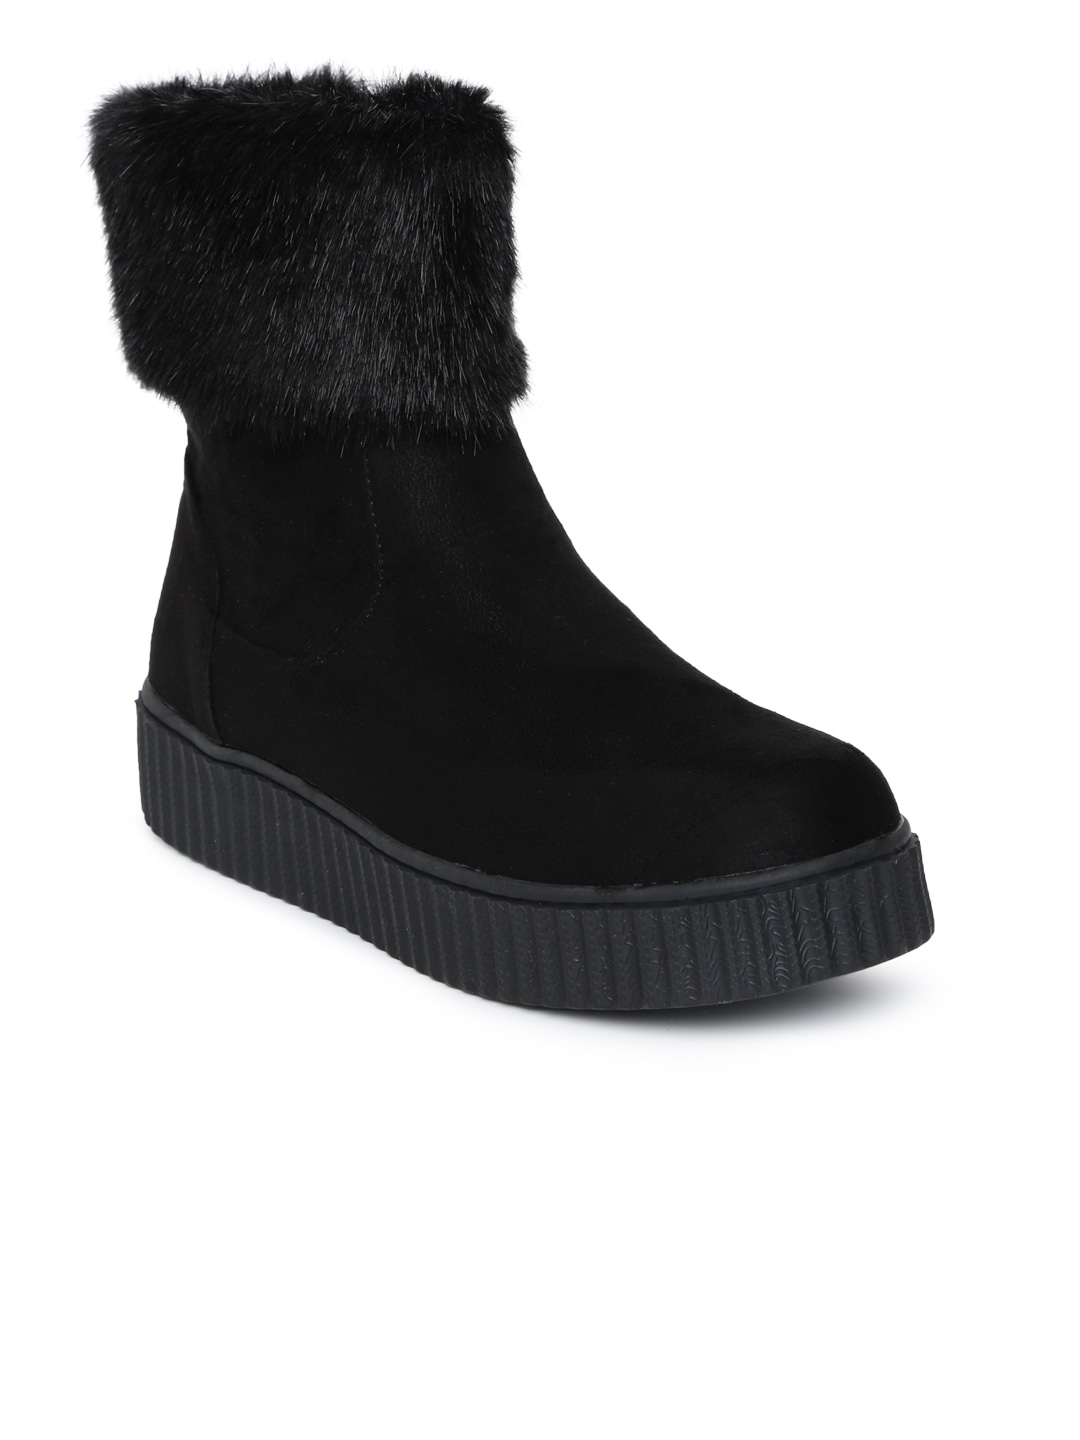 Black Solid High-Top Flat Boots